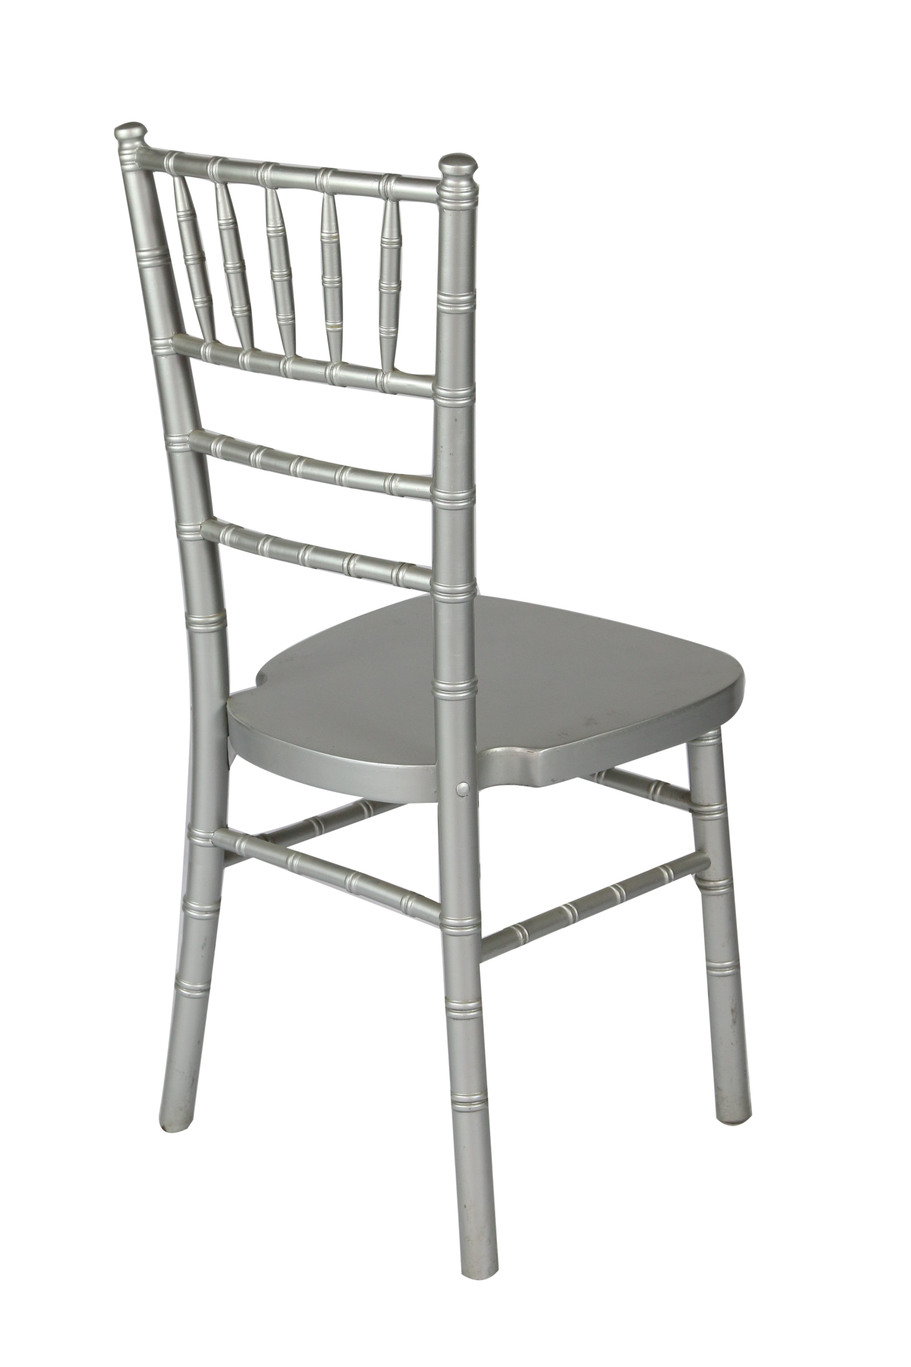 Silver chiavari chairs for sale visit VChairsCom for